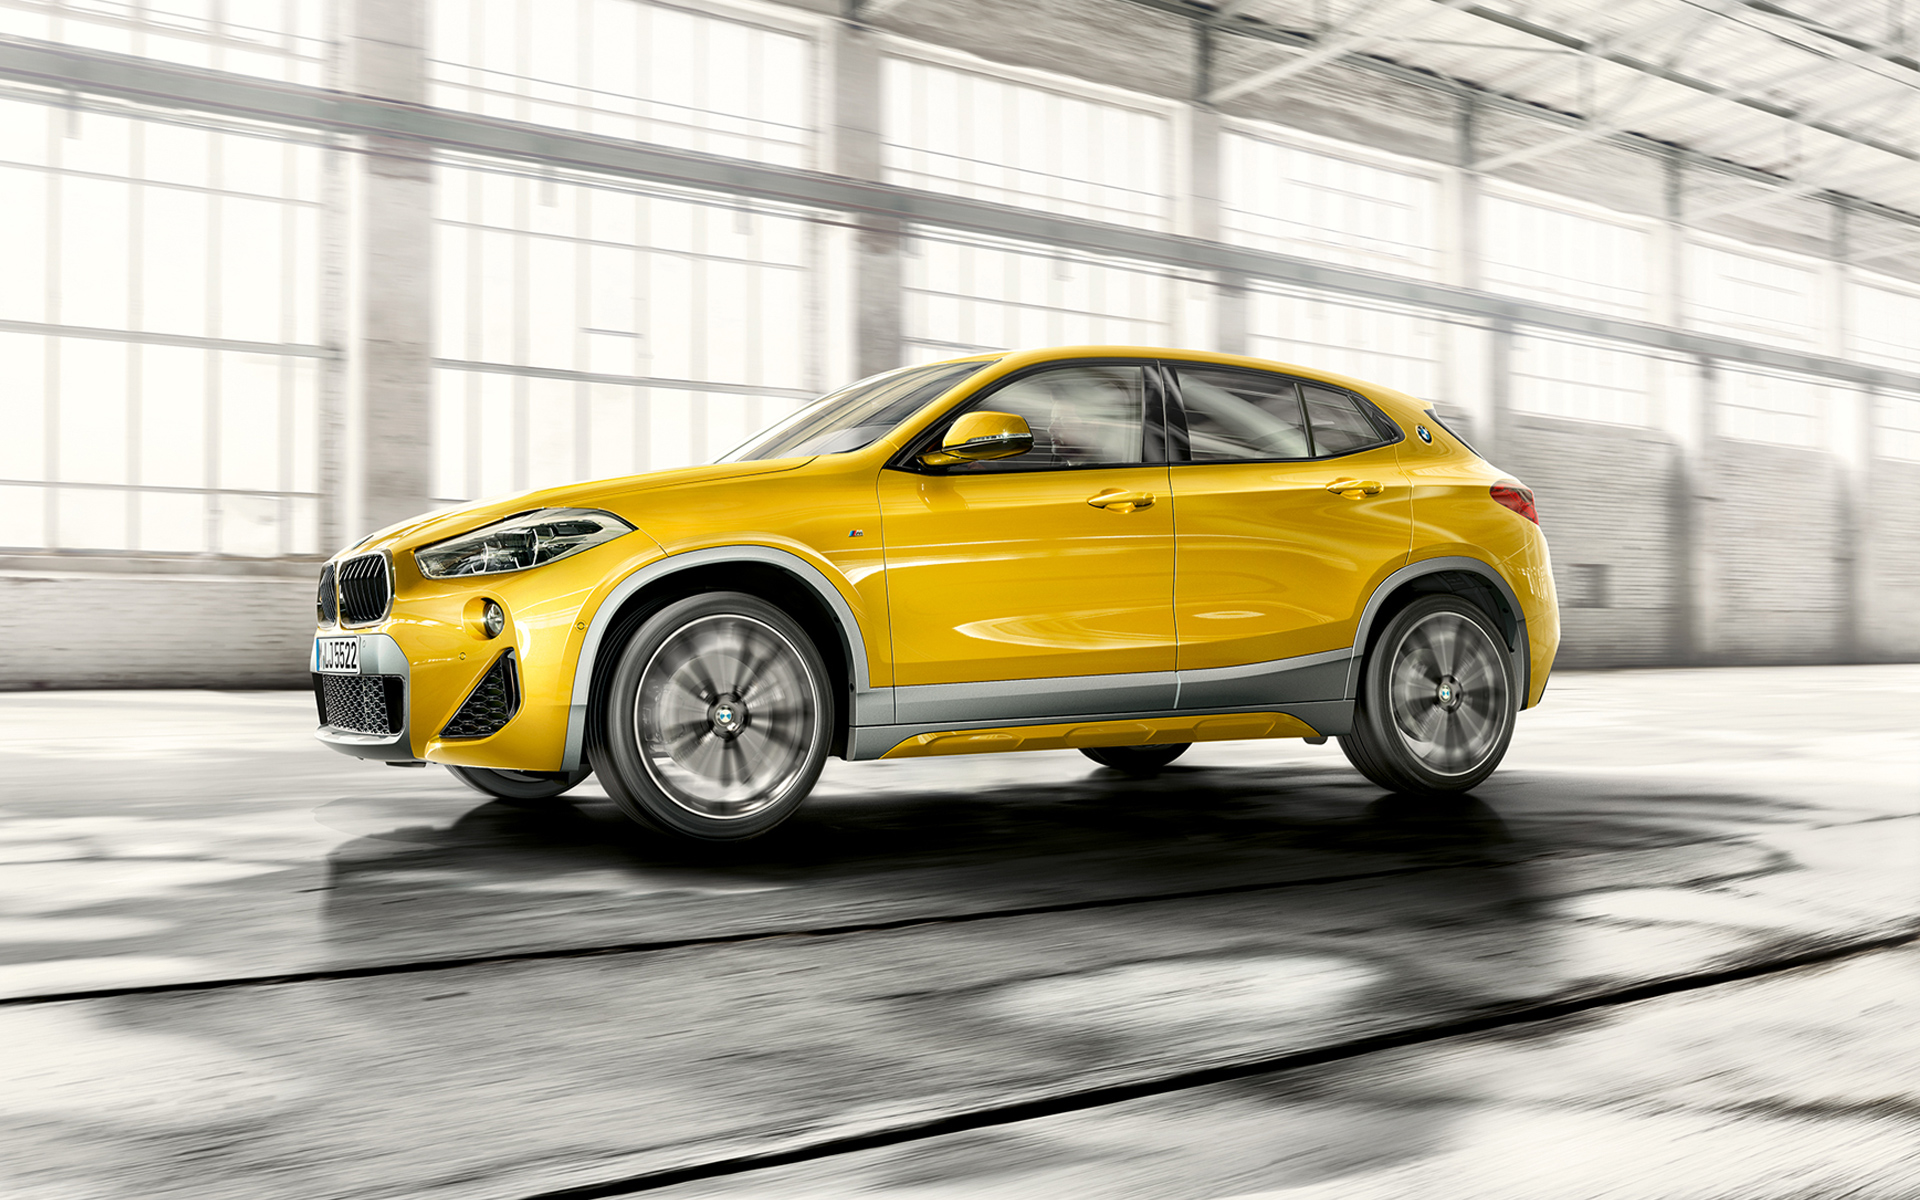 Diesel Wallpaper Cars Bmw X2 Price From 39 200 Euro For Sdrive20i Diesel From